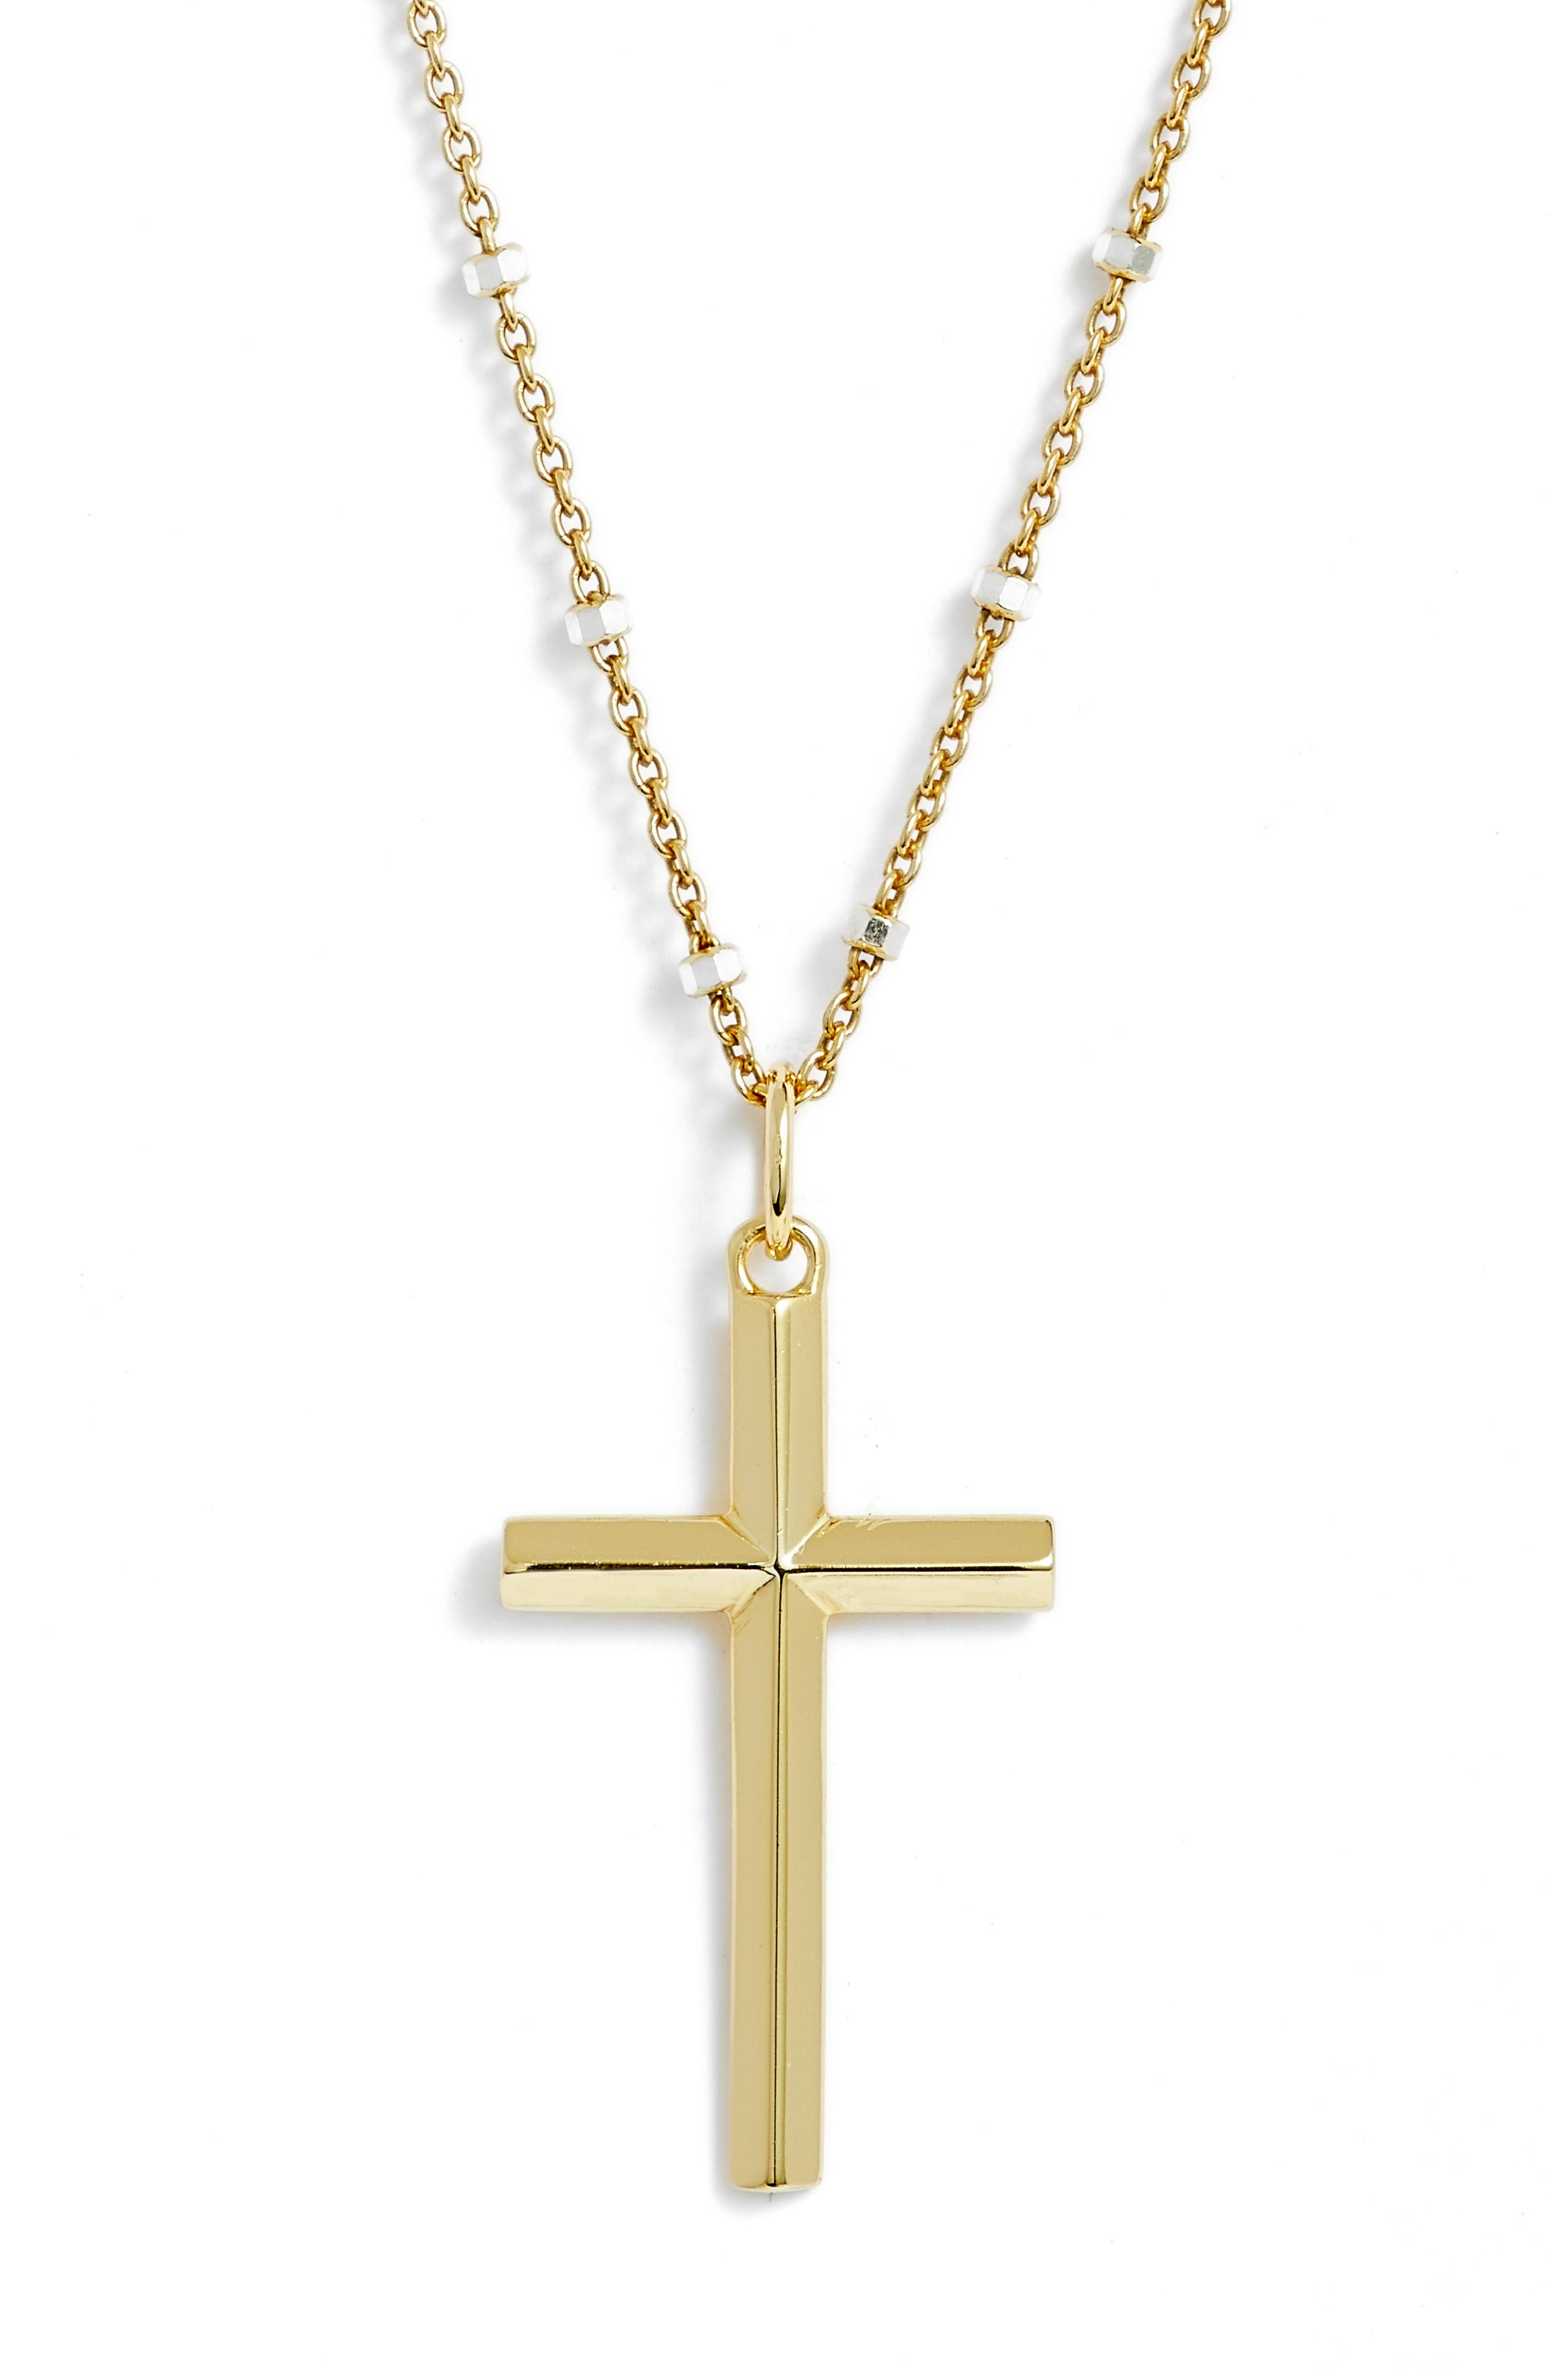 Two-Tone Cross Pendant Necklace,                             Main thumbnail 1, color,                             Gold/ Silver